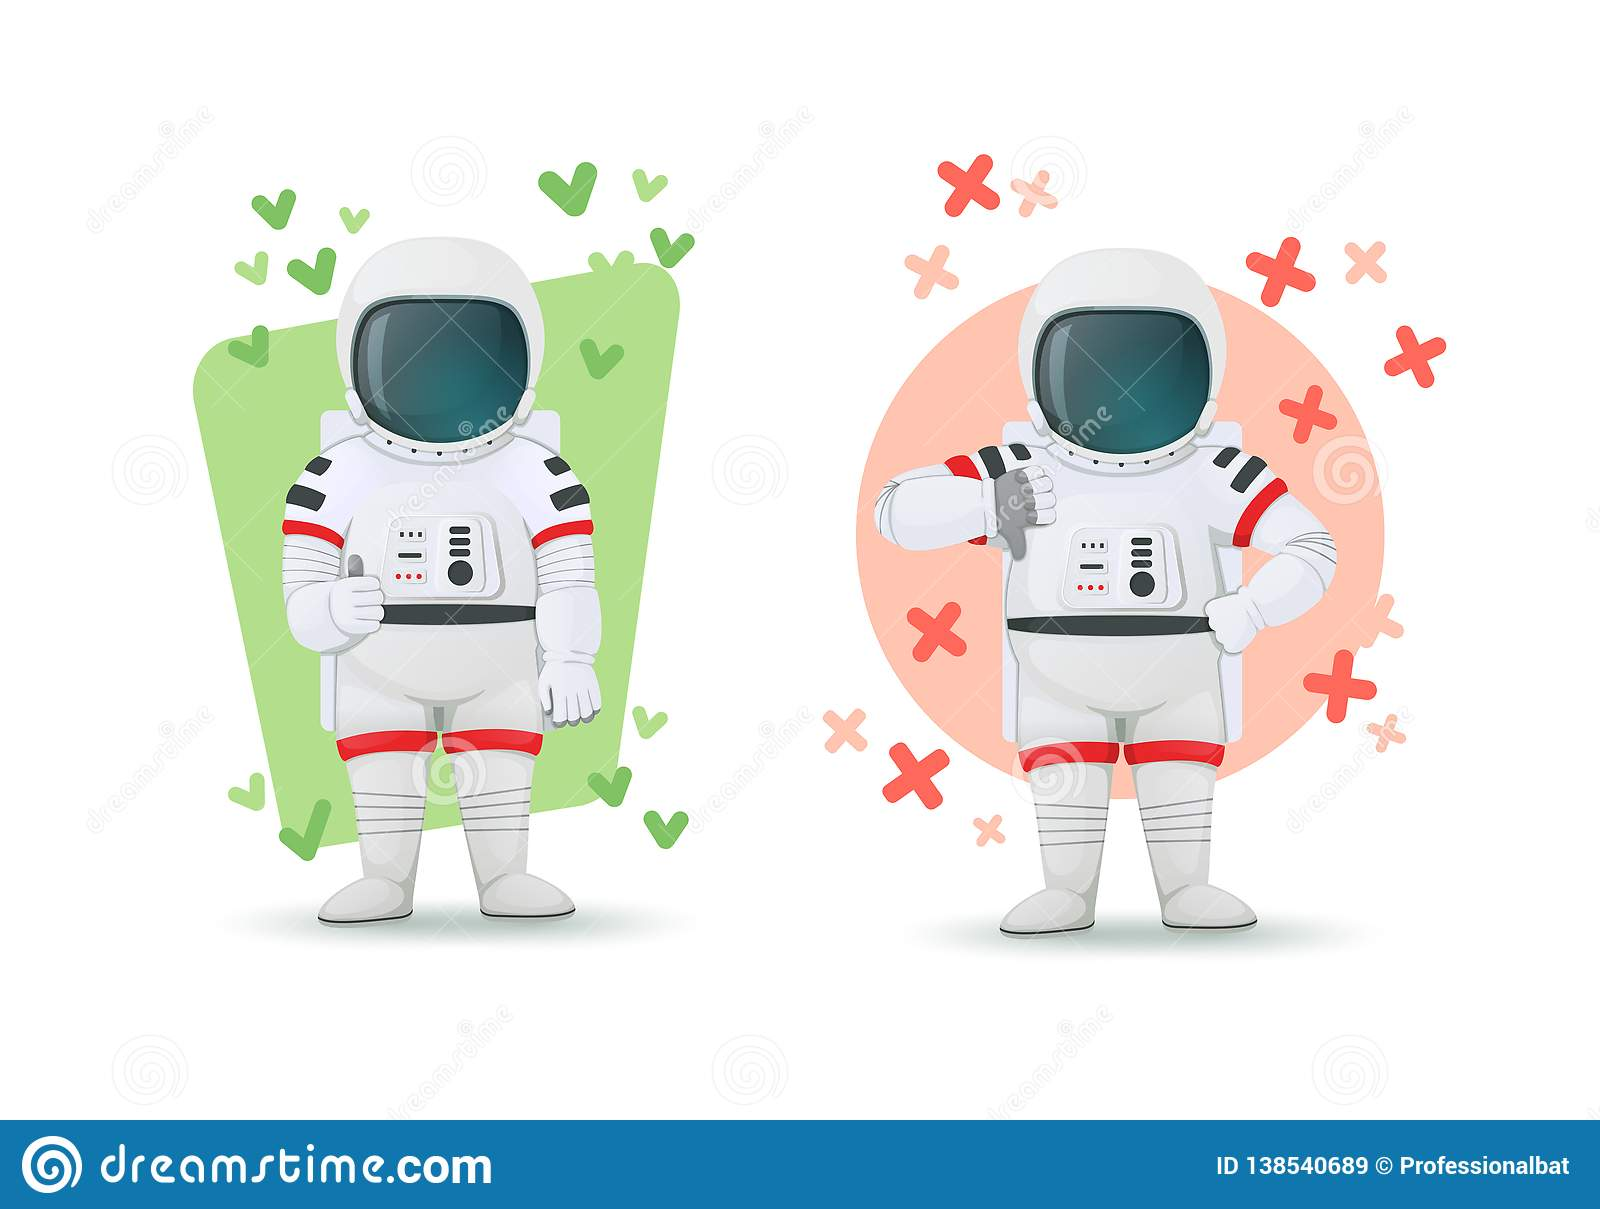 Set of astronauts making gestures of approval and disapproval. One showing thumbs up and other thumbs down sign. Like and dislike